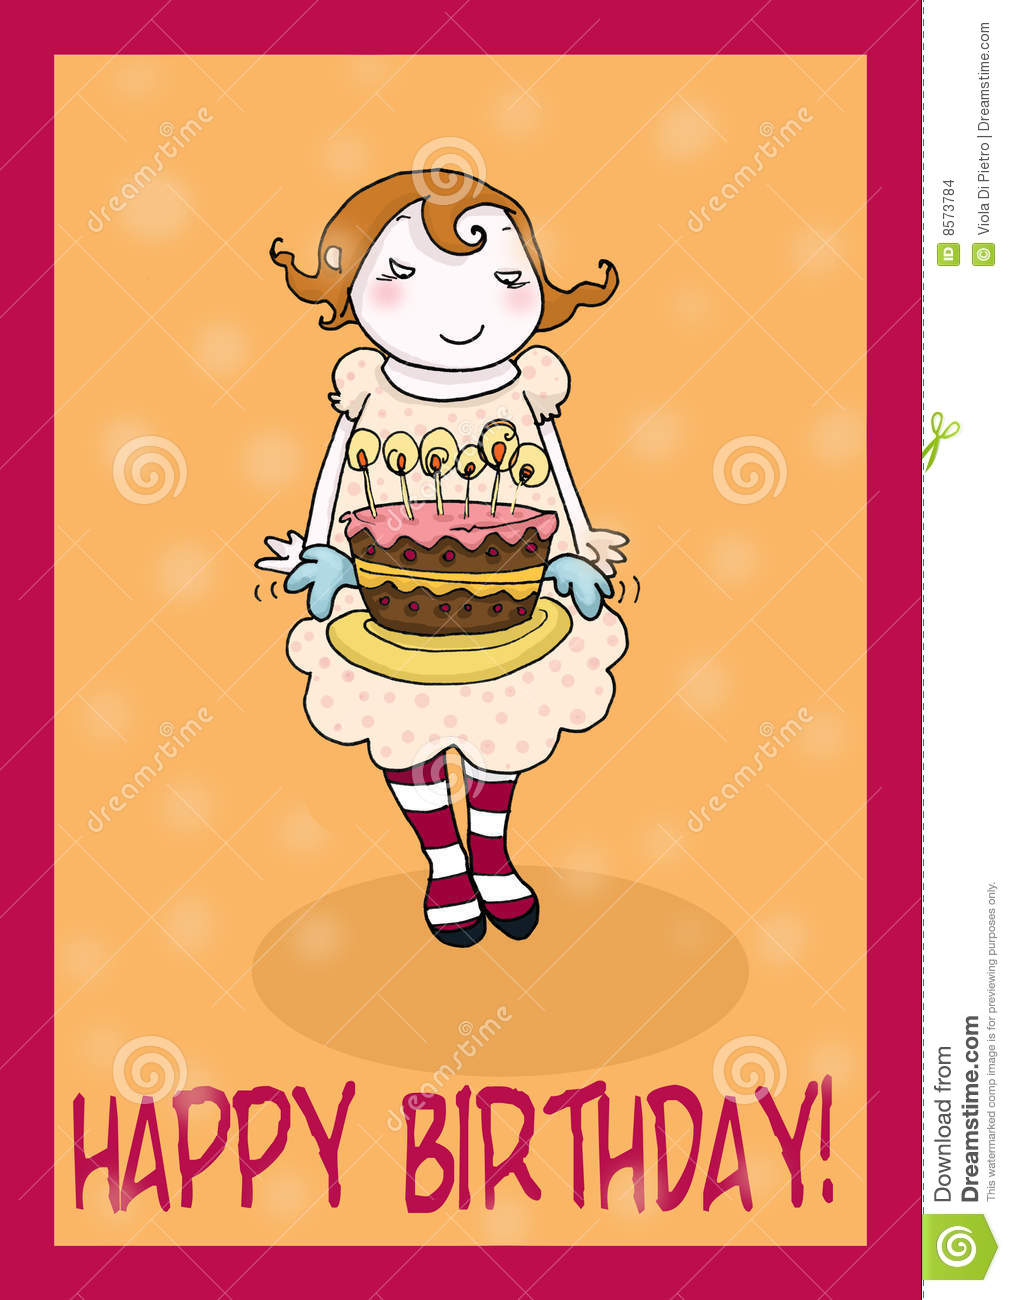 Happy Birthday Cake Greetings Card Stock Images Image 8573784